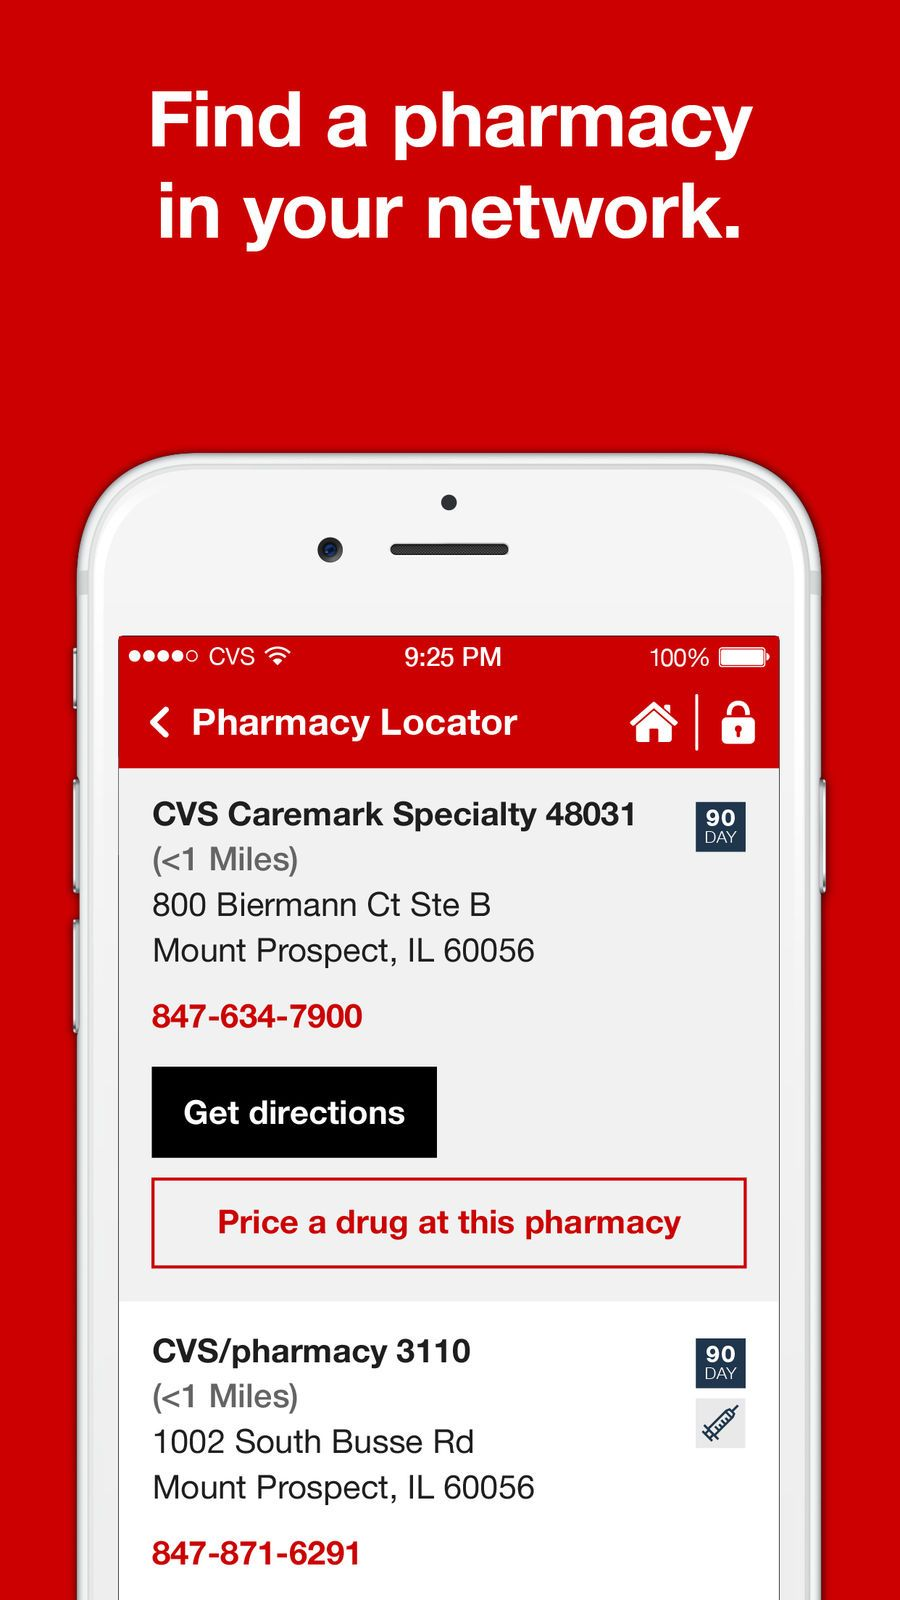 CVS Caremark Fitnessampappsios (With images) Cvs